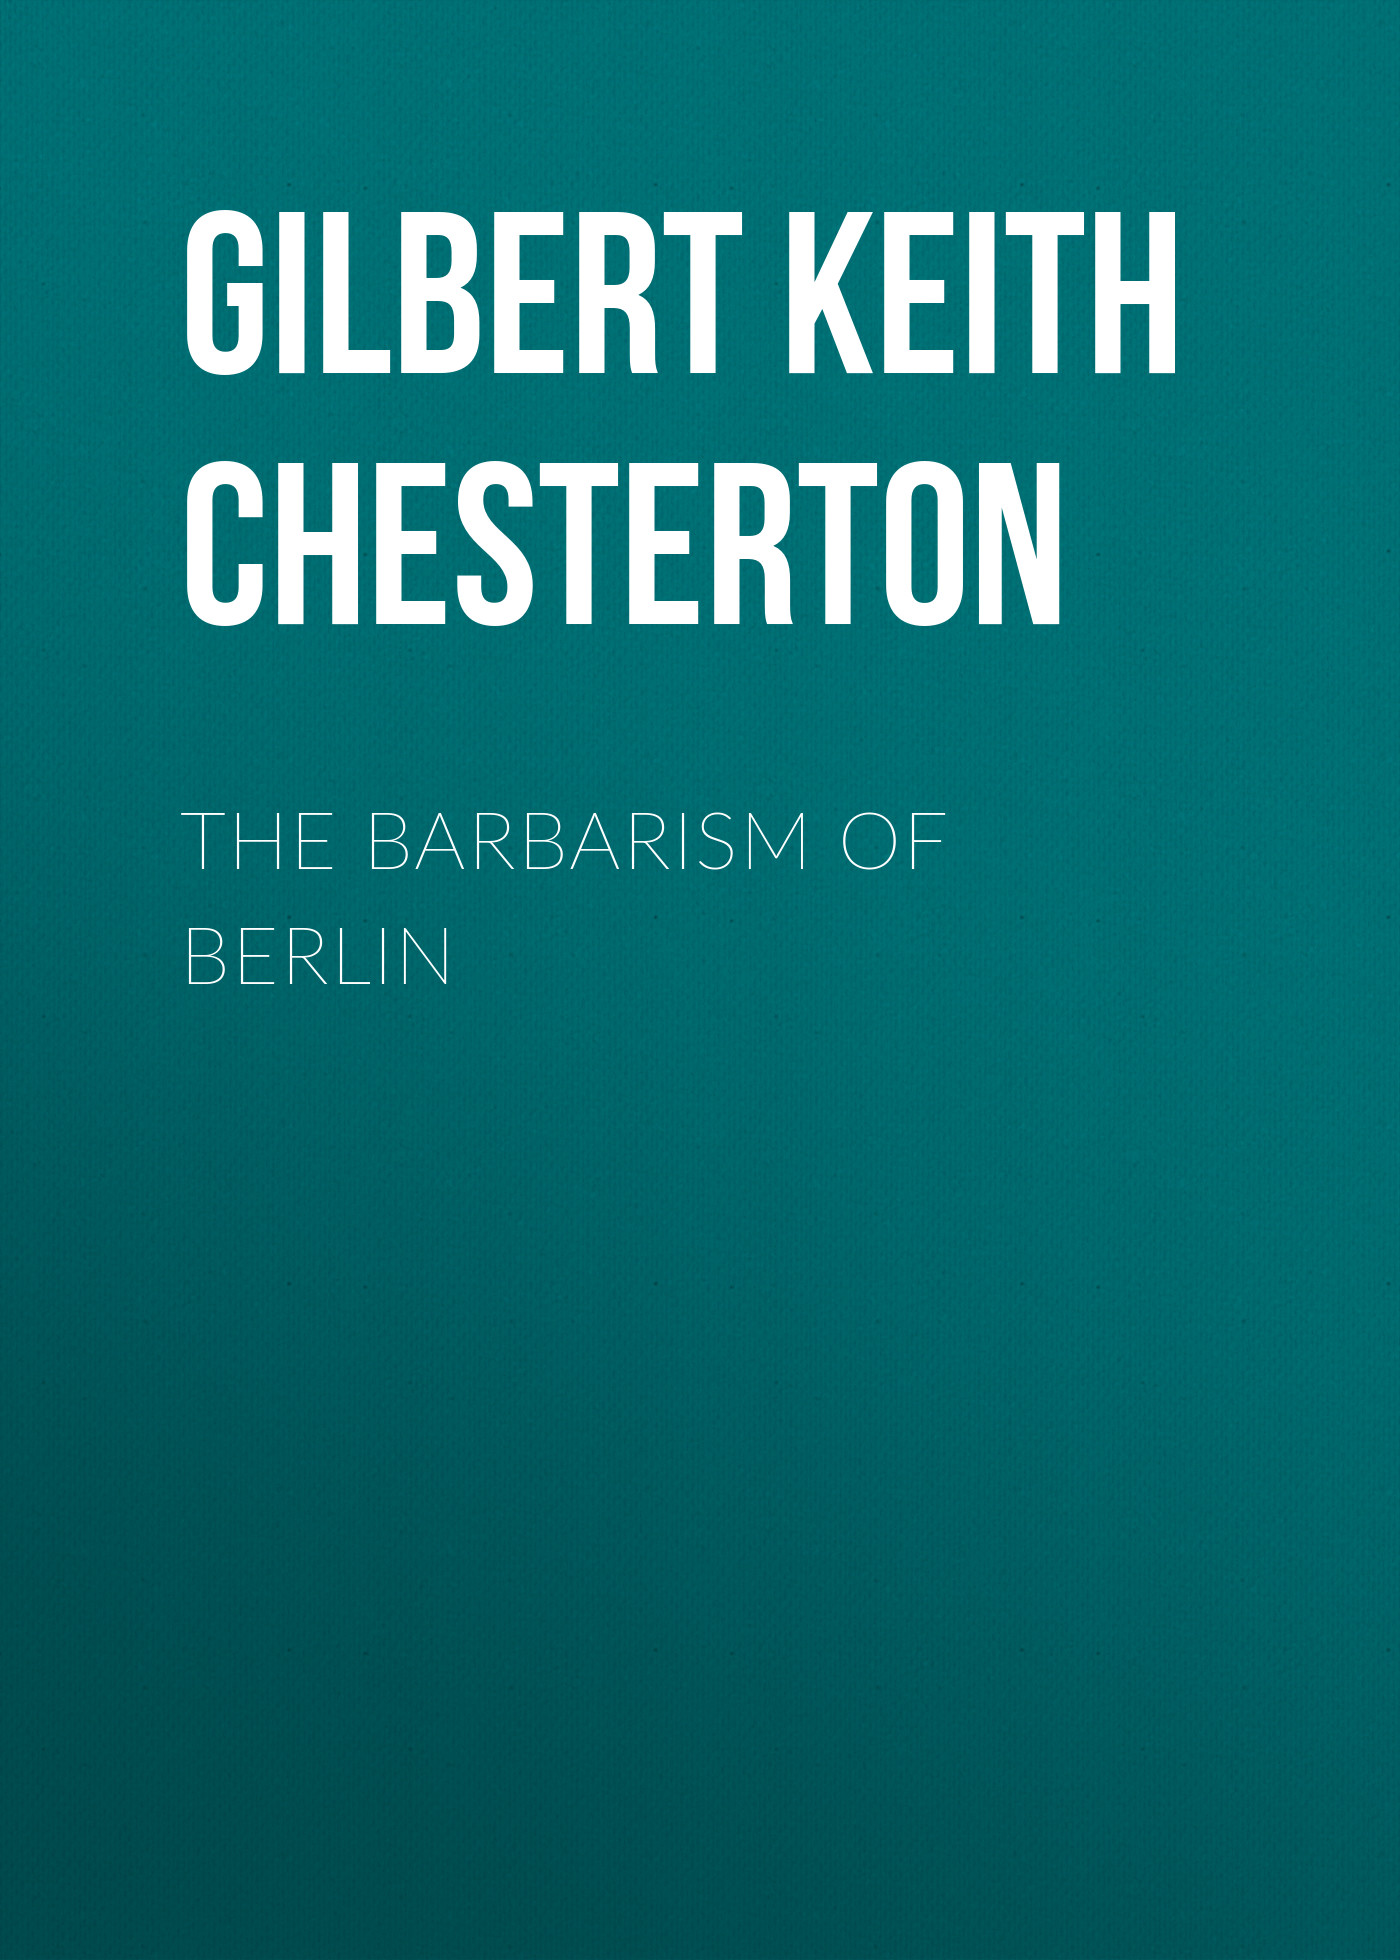 Gilbert Keith Chesterton The Barbarism of Berlin gilbert keith chesterton the ball and the cross